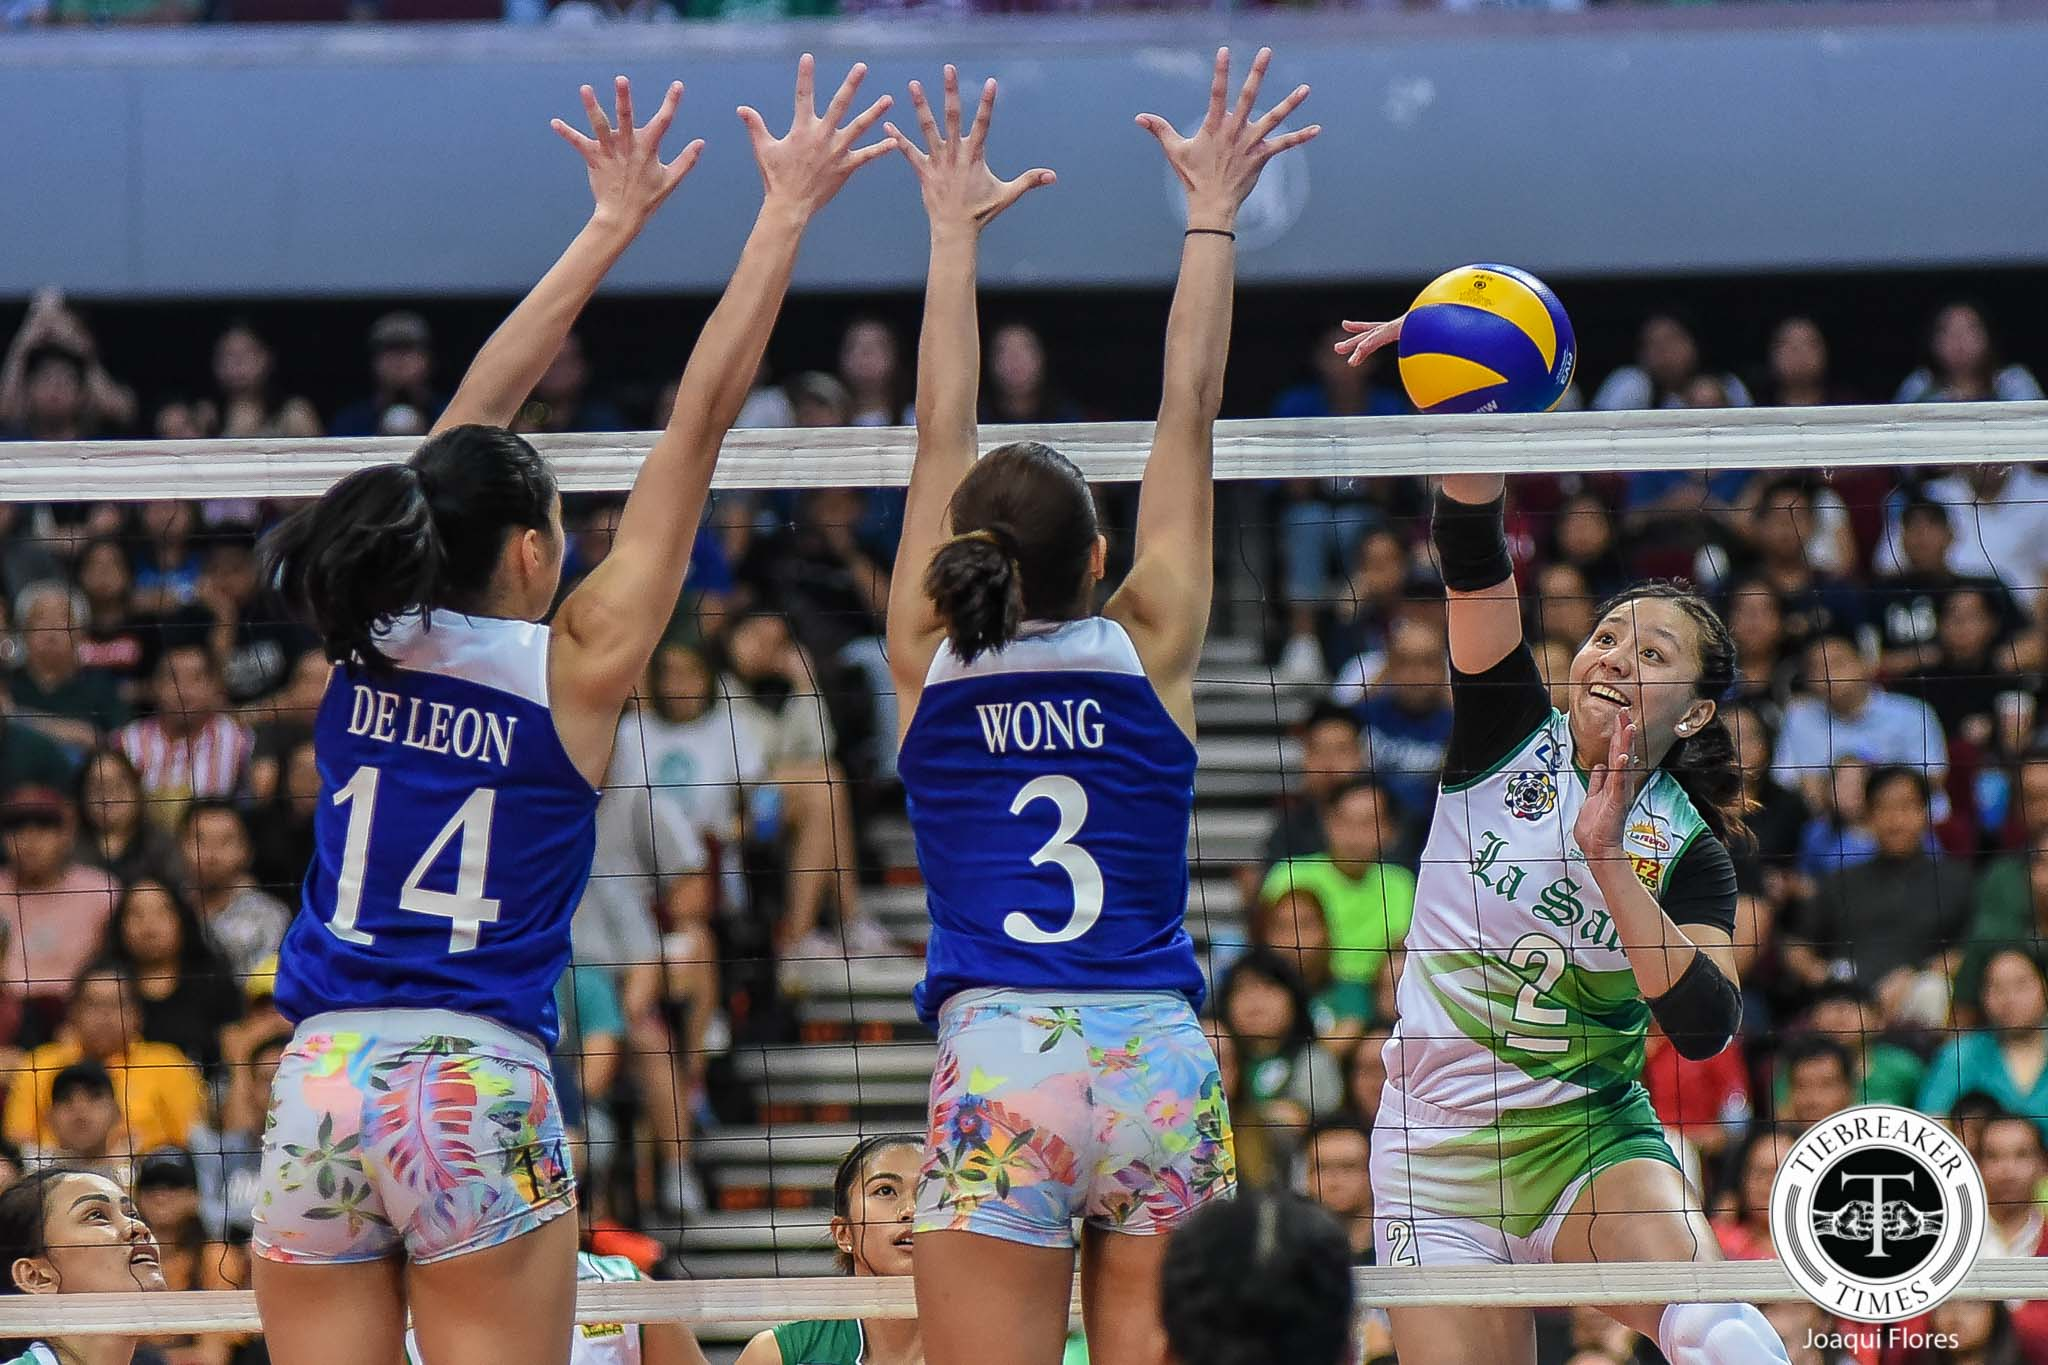 Tiebreaker Times Perfect storm for Bea De Leon in first match of last season with Ateneo Lady Eagles ADMU News UAAP Volleyball  UAAP Season 81 Women's Volleyball UAAP Season 81 Bea De Leon Ateneo Women's Volleyball